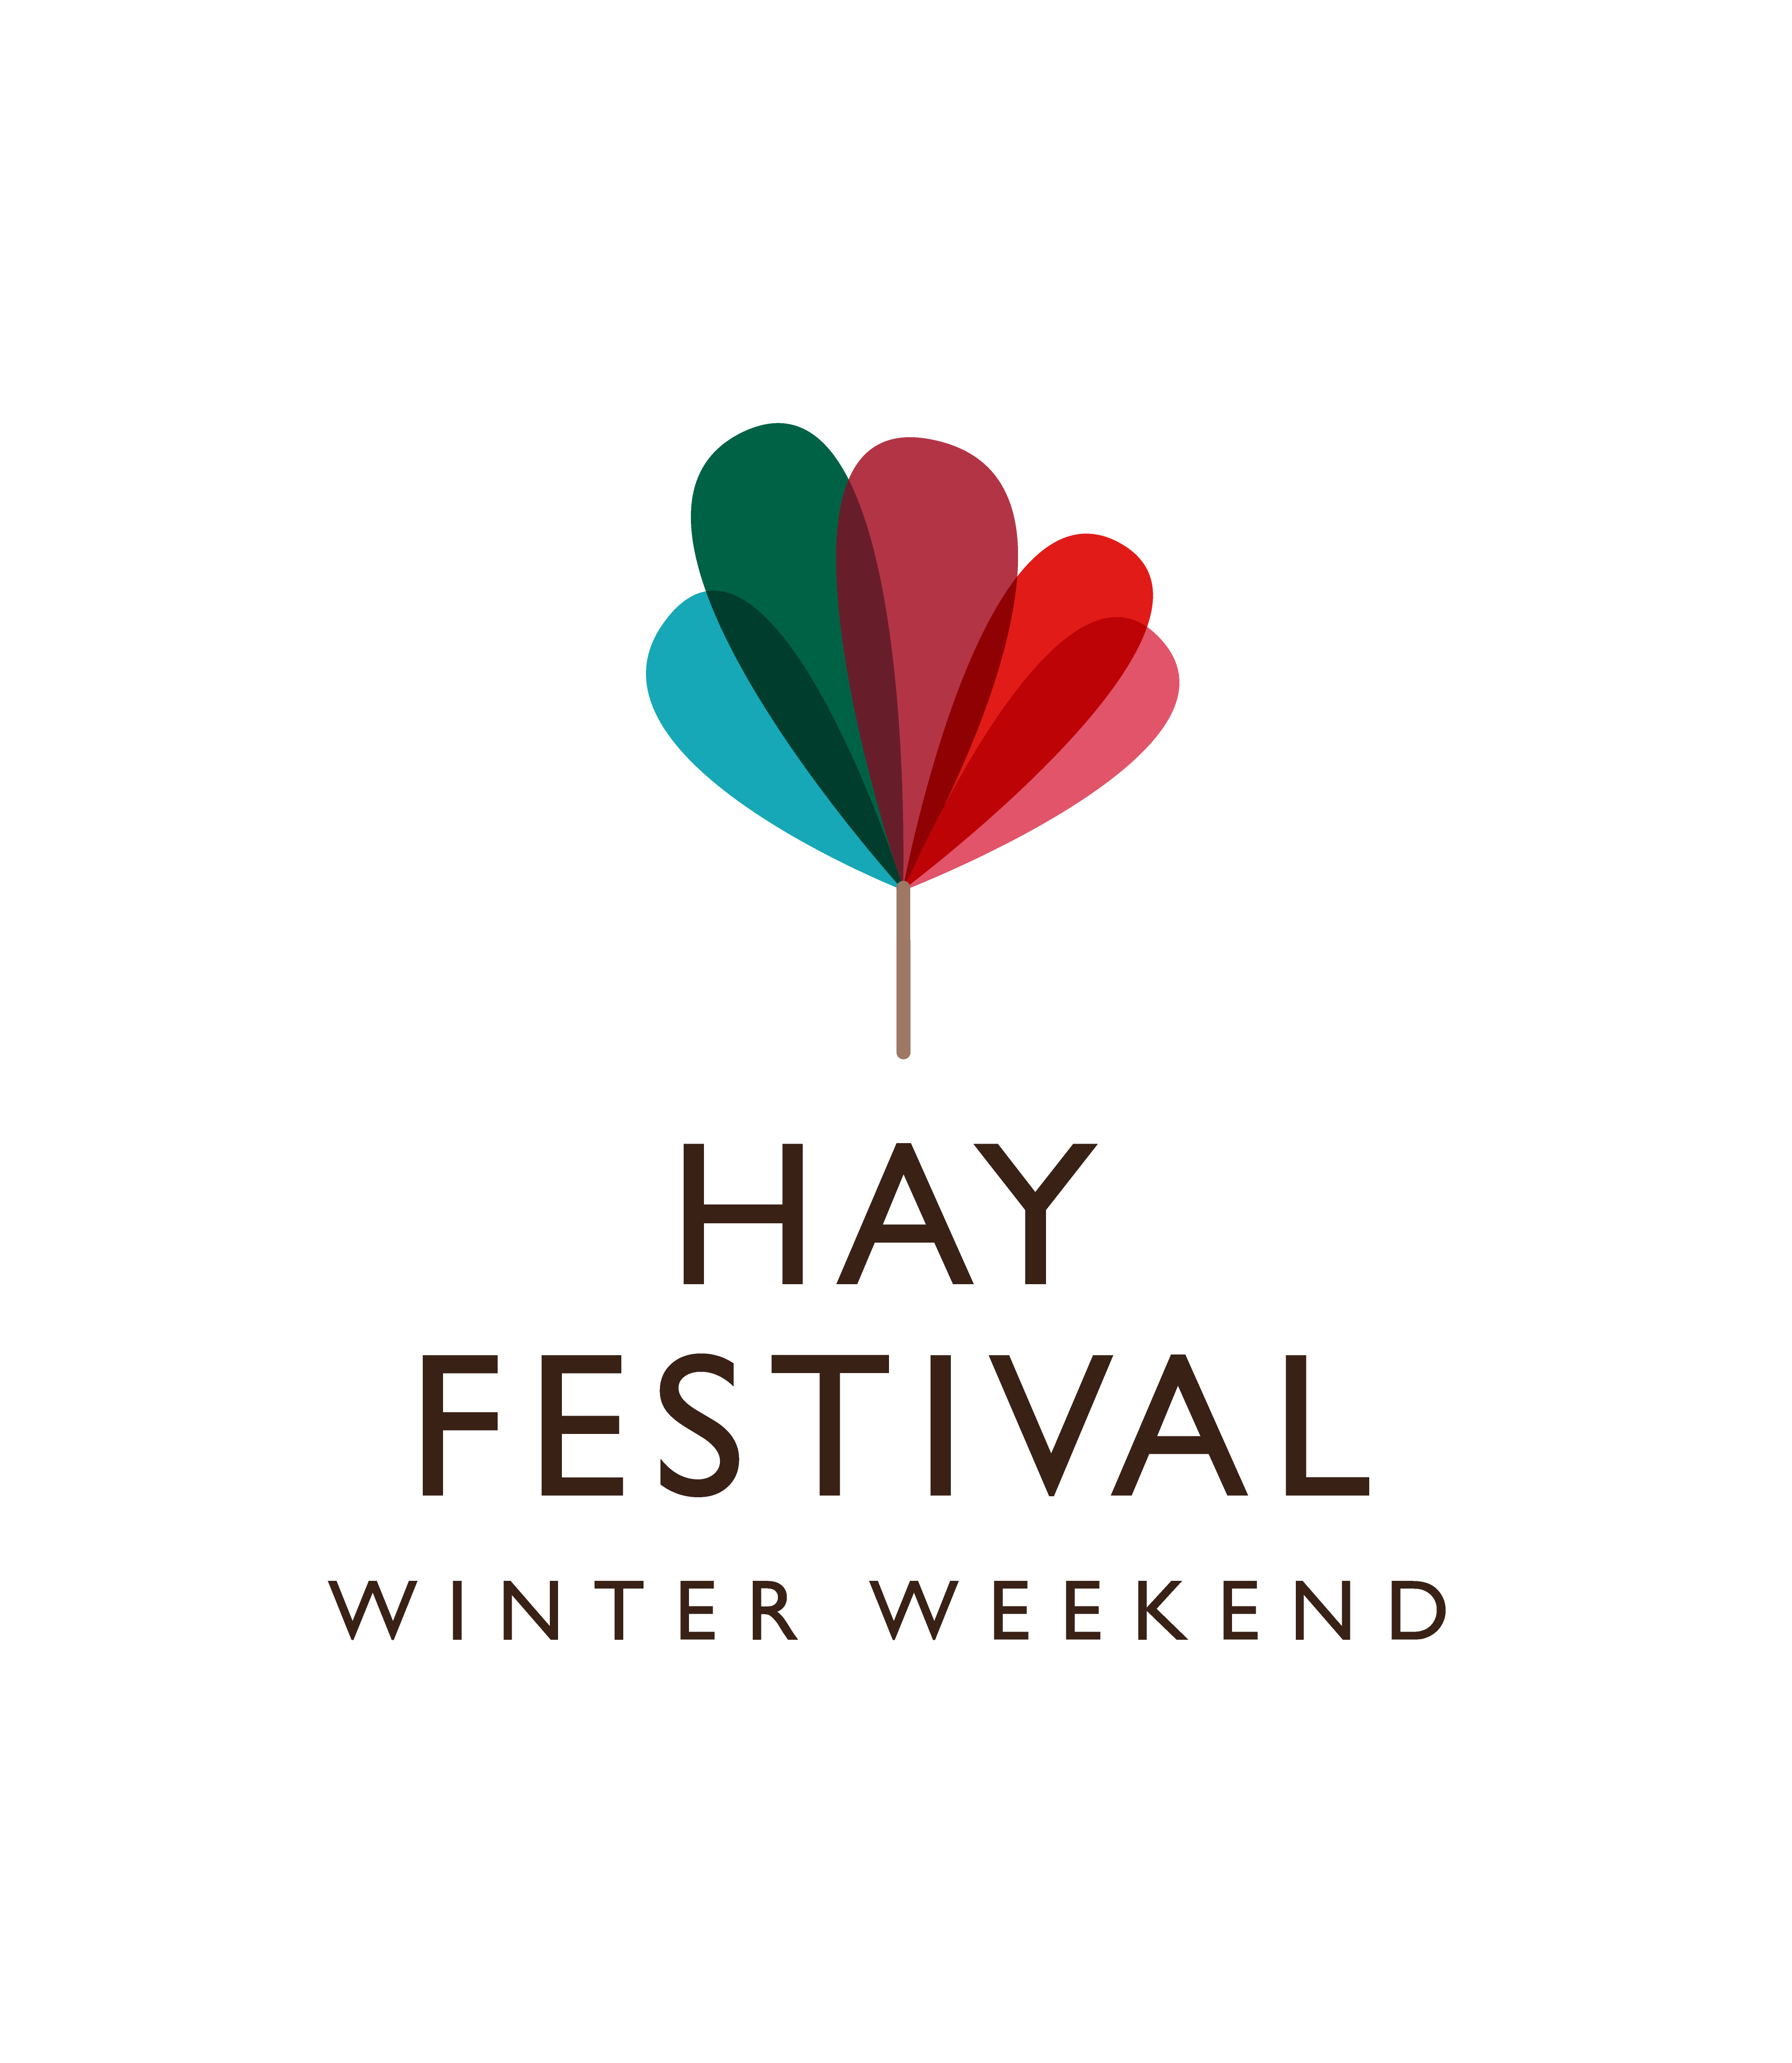 Hay Festival Winter Weekend logo